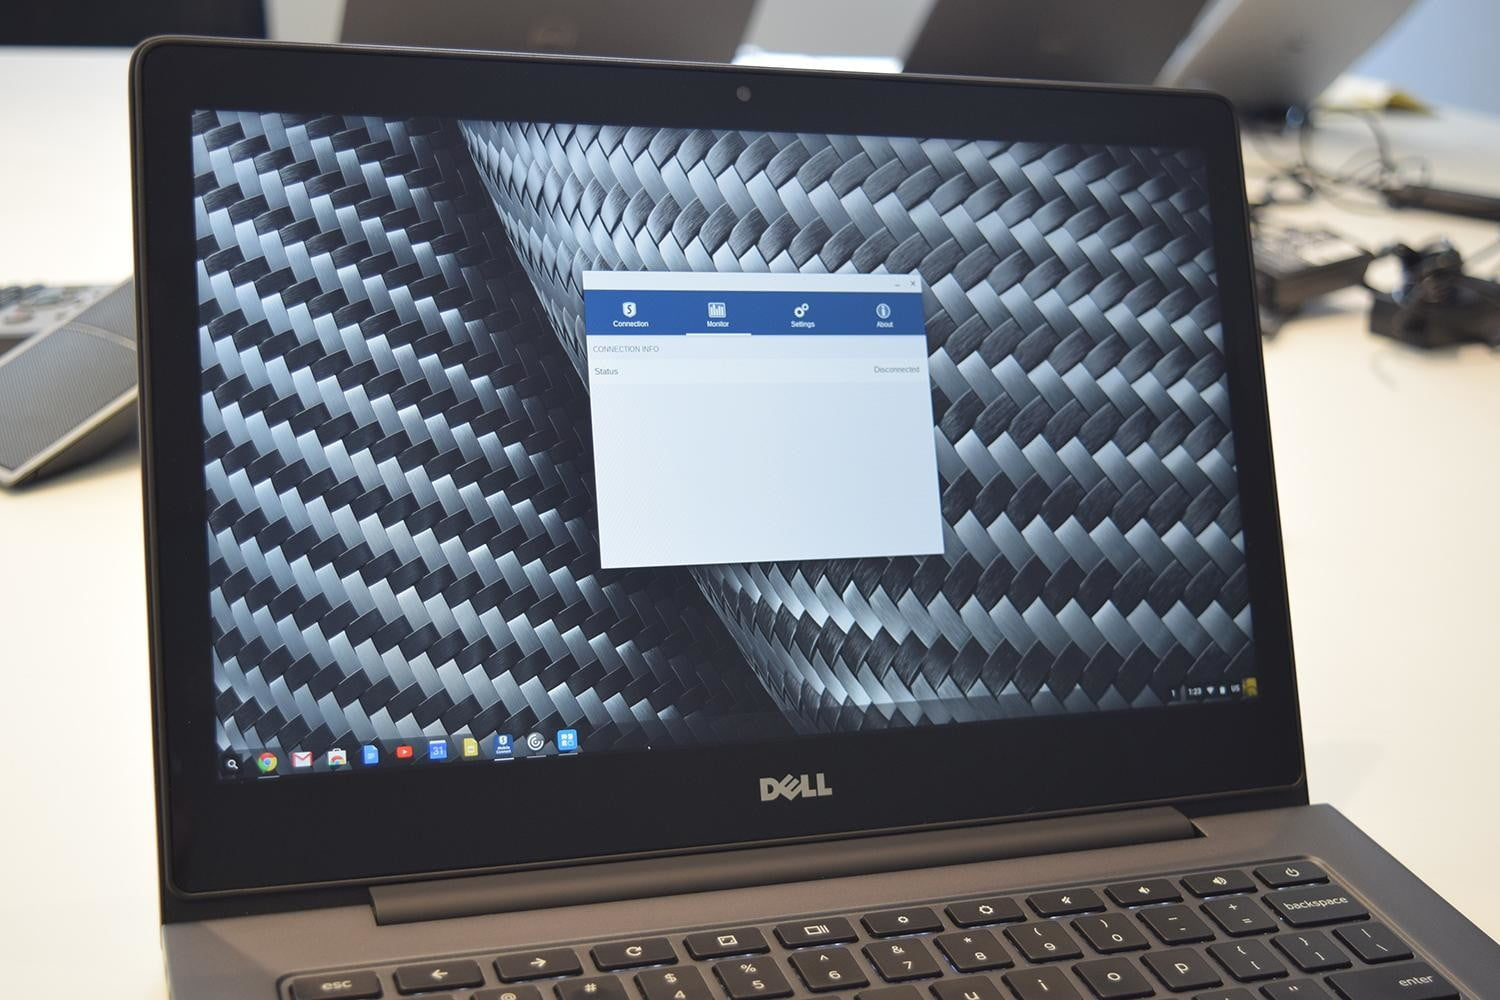 dell expands the chromebook line with 13 inch 1080p option dellchromebook13 6